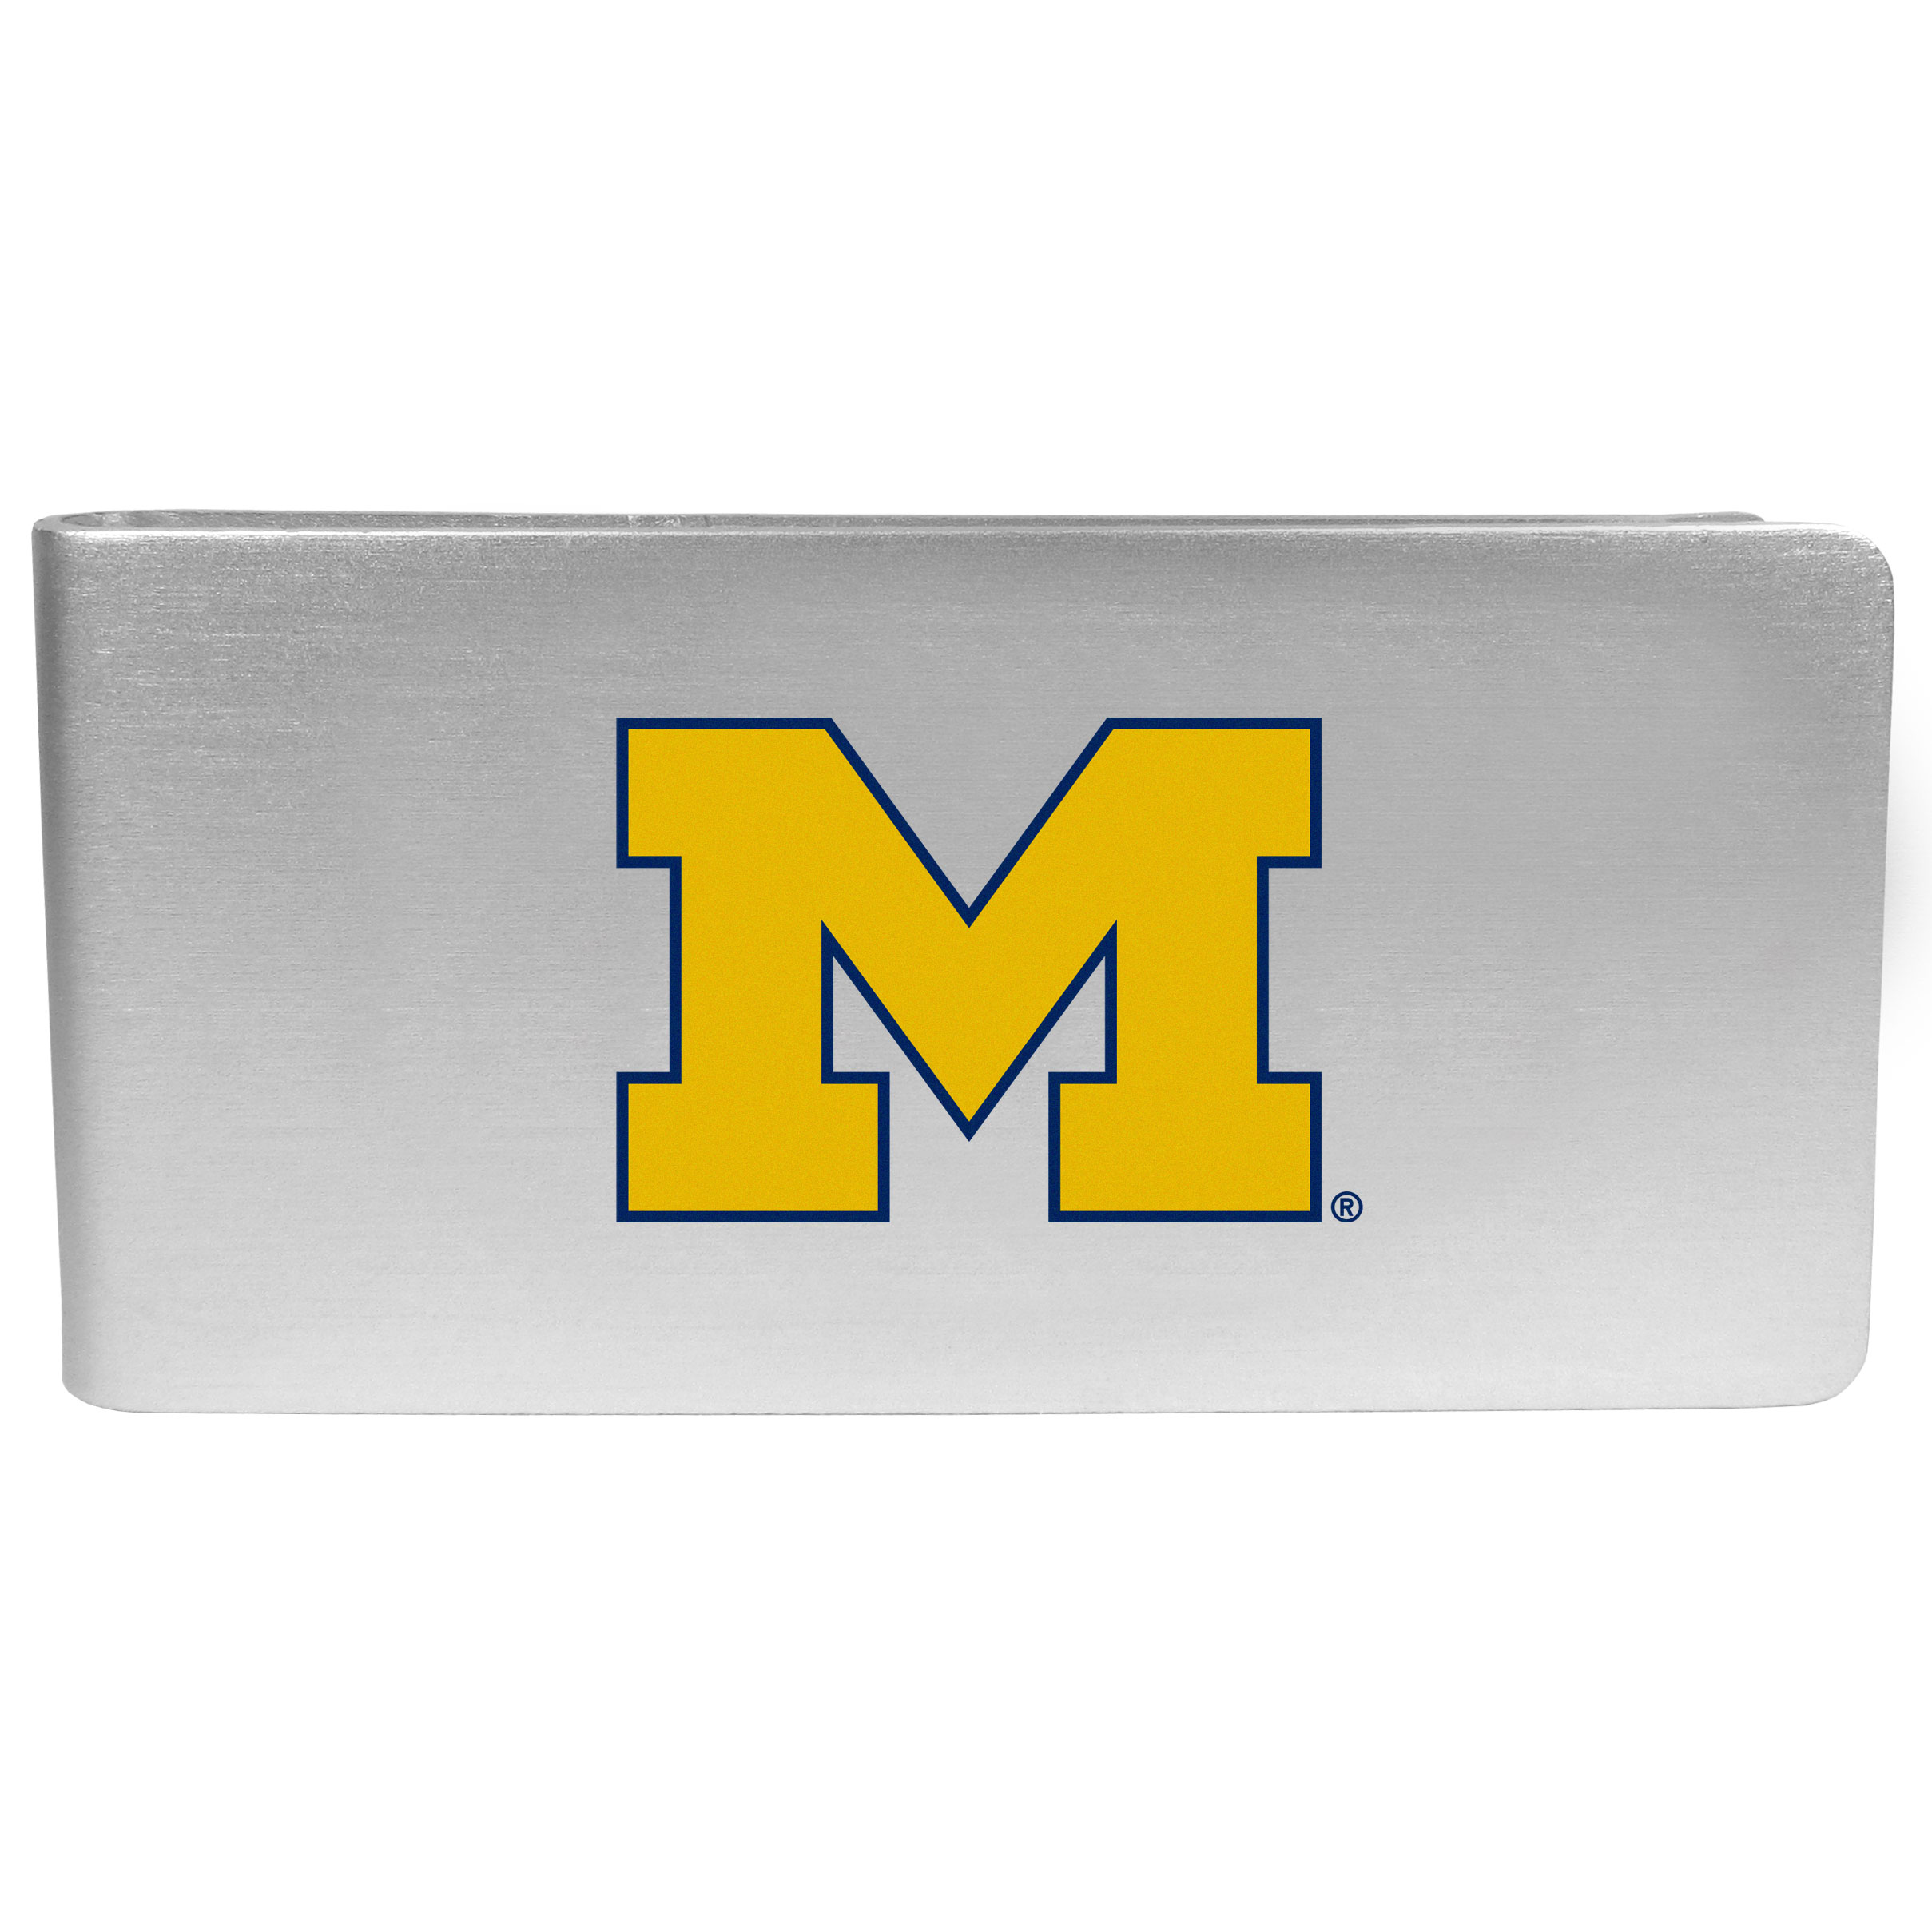 Michigan Wolverines Logo Money Clip - Our brushed metal money clip has classic style and functionality. The attractive clip features the Michigan Wolverines logo expertly printed on front.